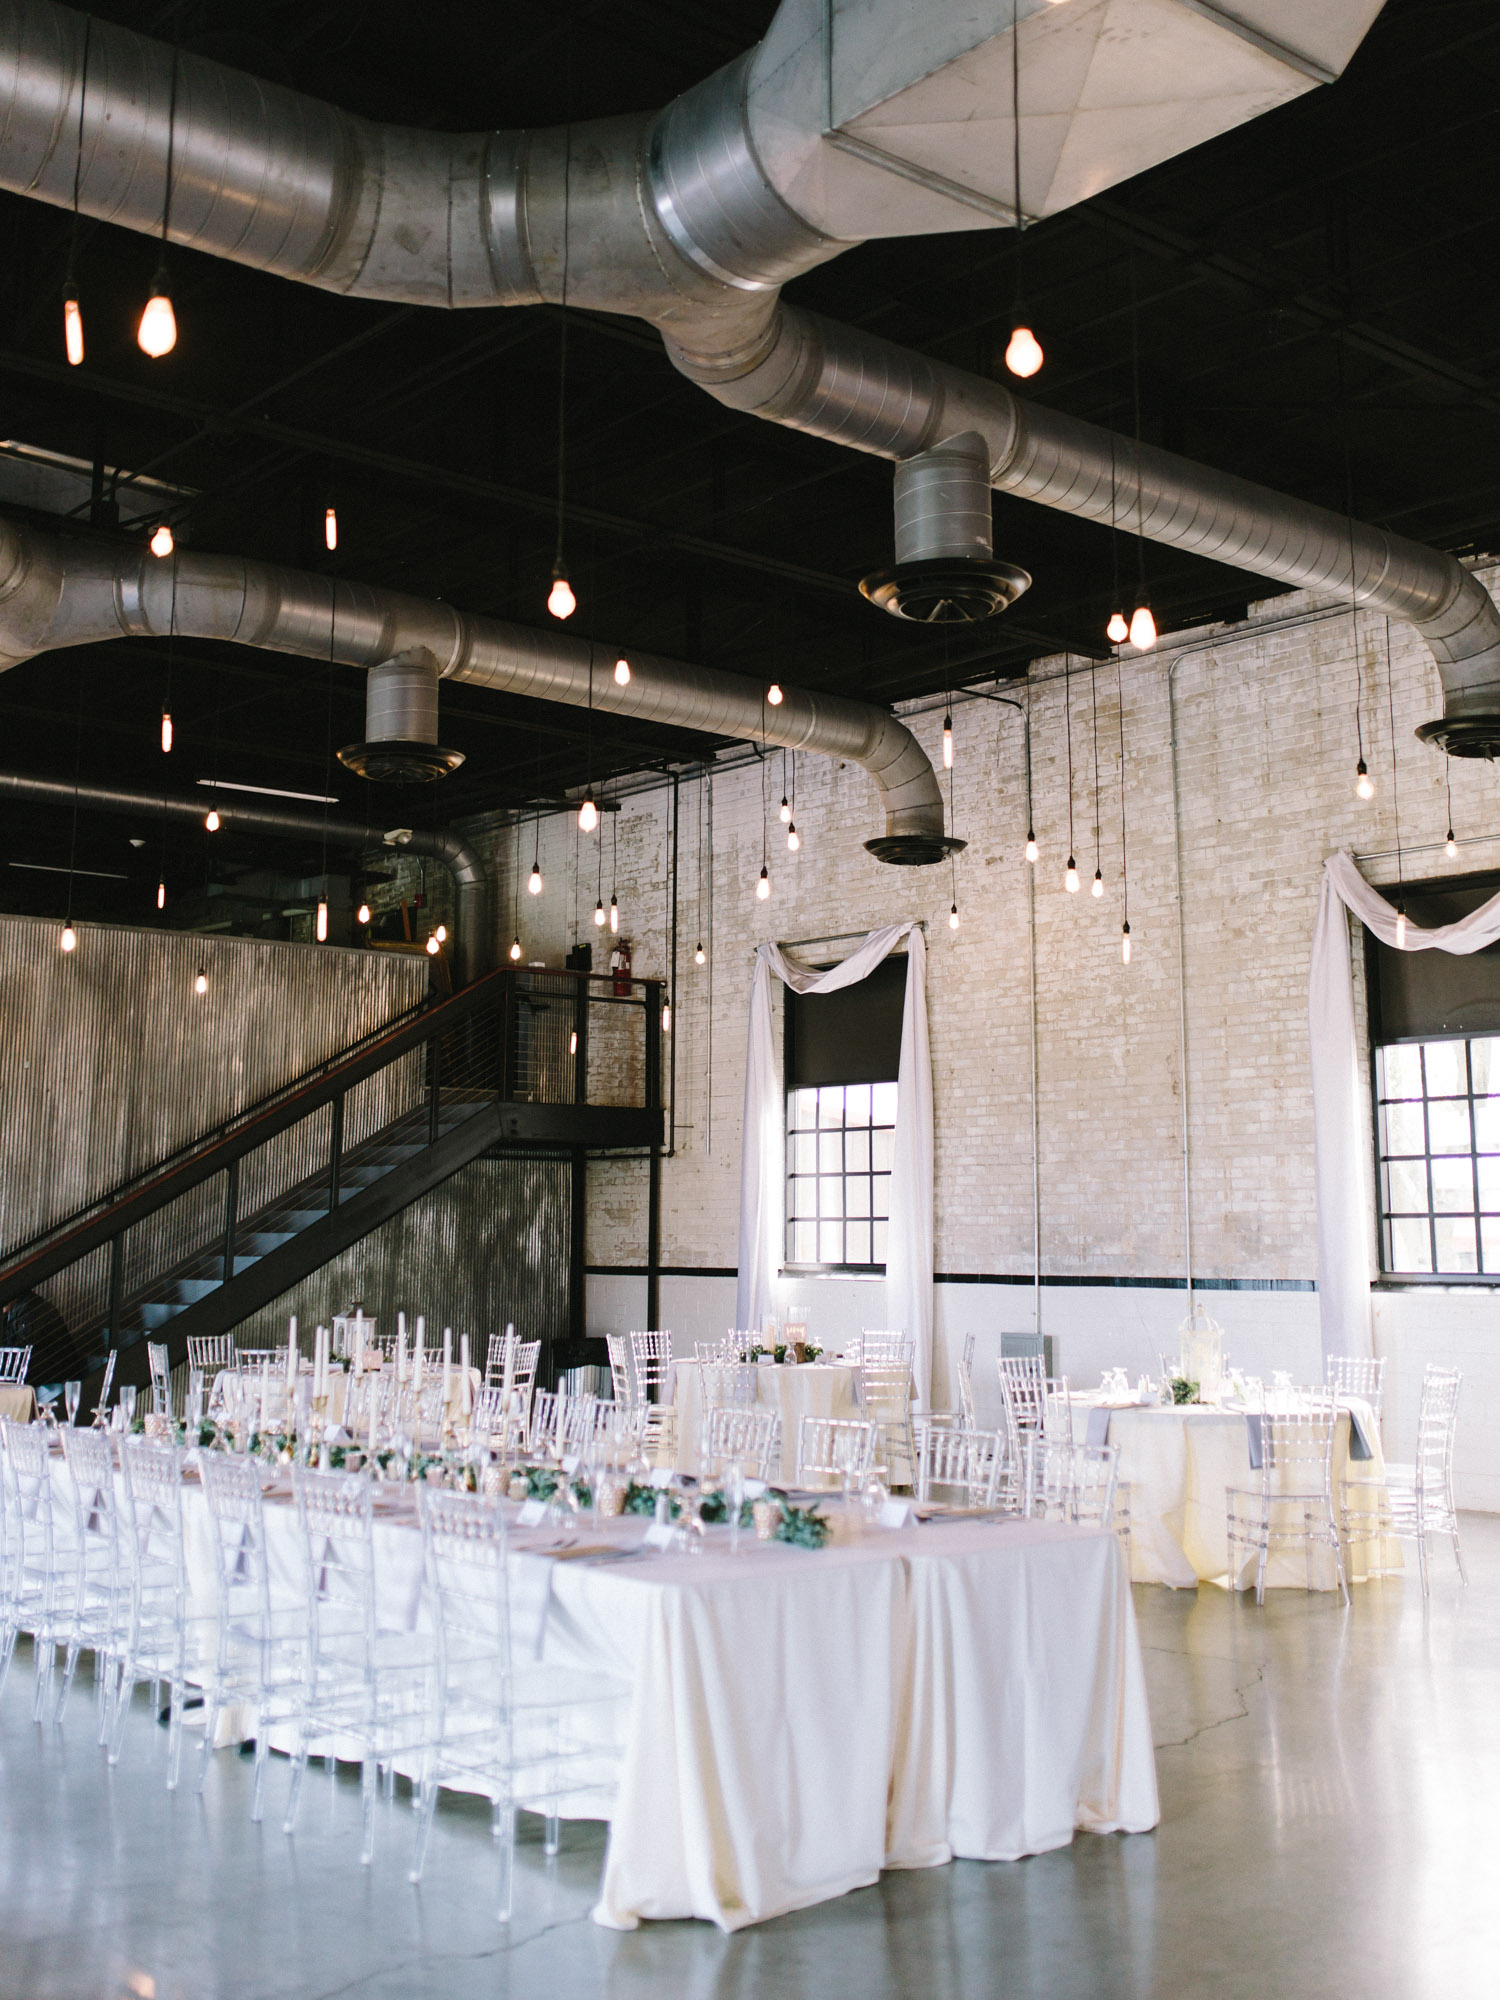 An industrial and romantic wedding reception design with hanging Edison bulbs and ethereal white and blush tables at The Brick by Christina Harrison Photography